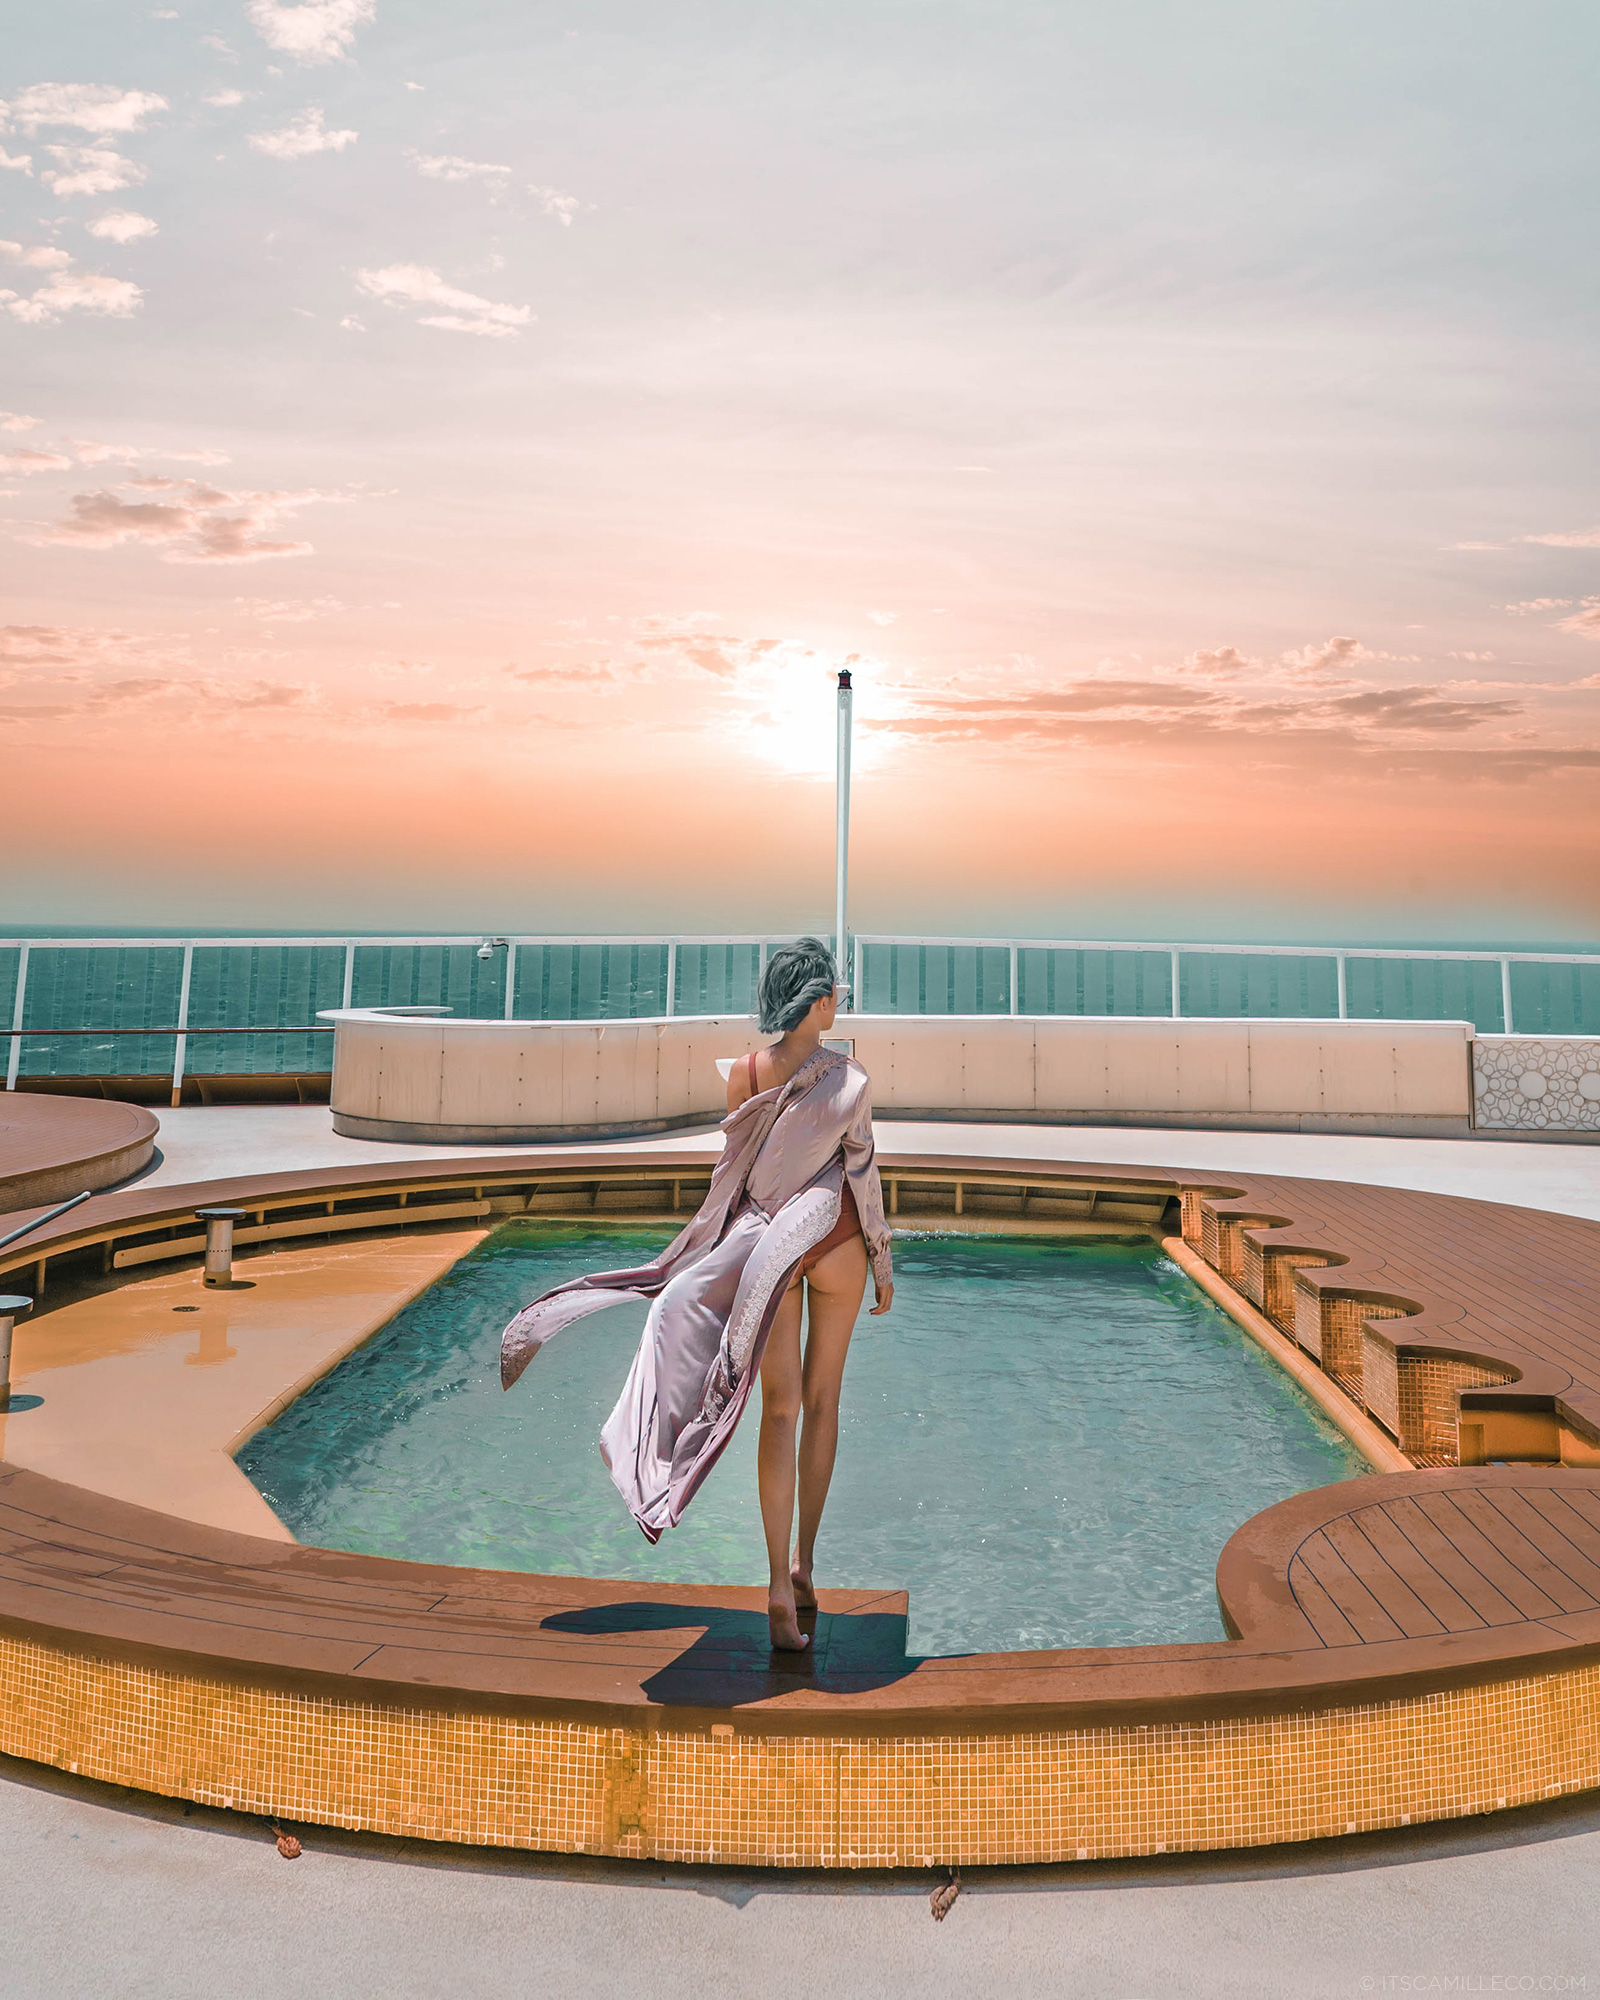 Superstar Virgo Cruise Sunset - Camille Co